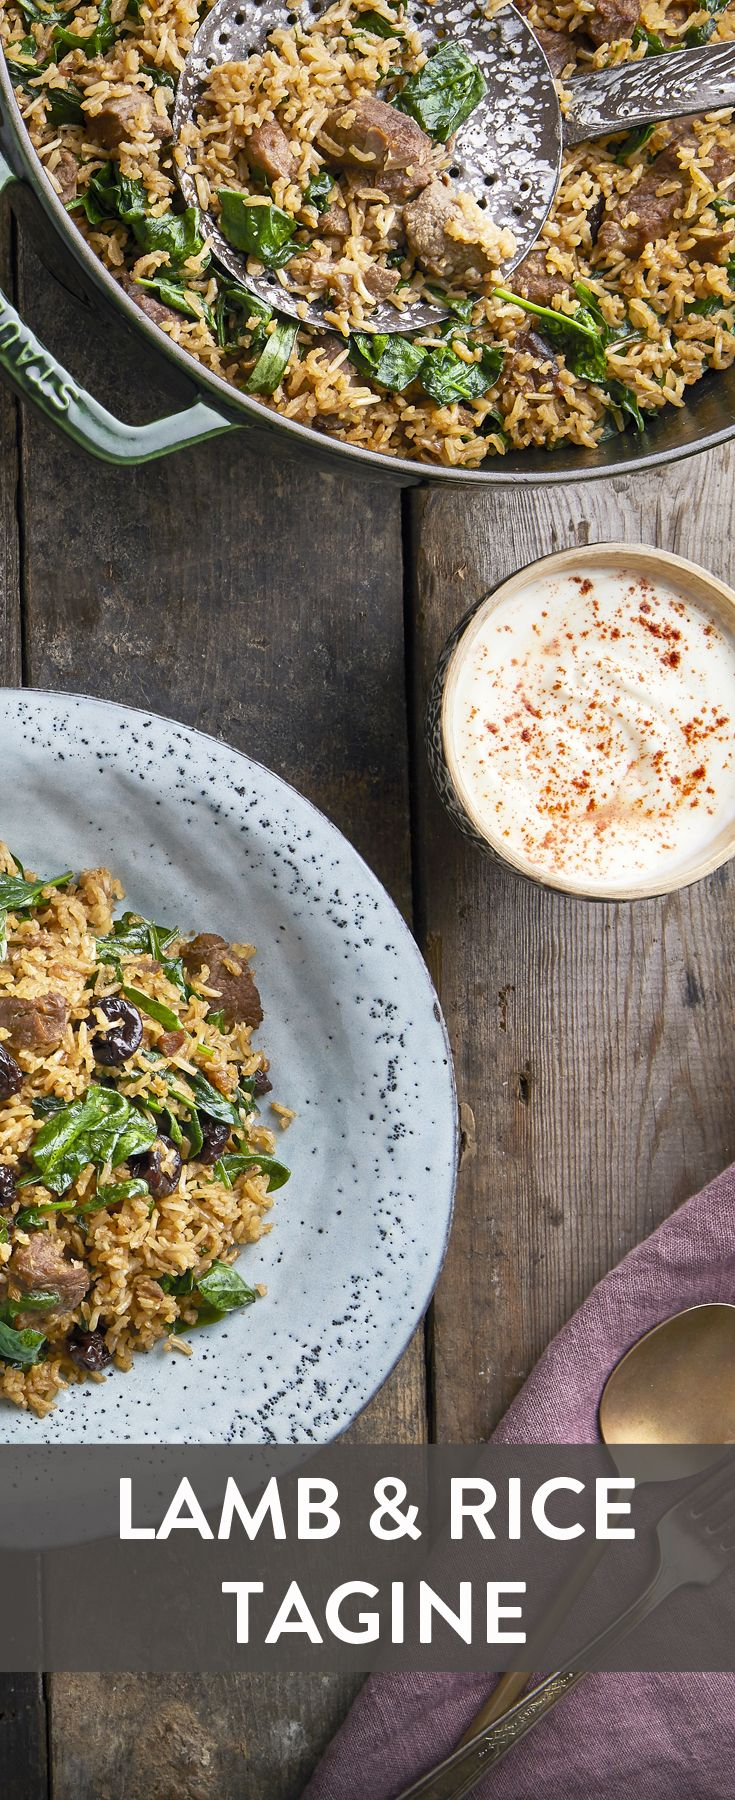 We have teamed up with Great British Chefs to bring you this lamb and rice tagine with deep aromatic spices paired with cooling yogurt and nutty Tilda Wholegrain Basmati rice.